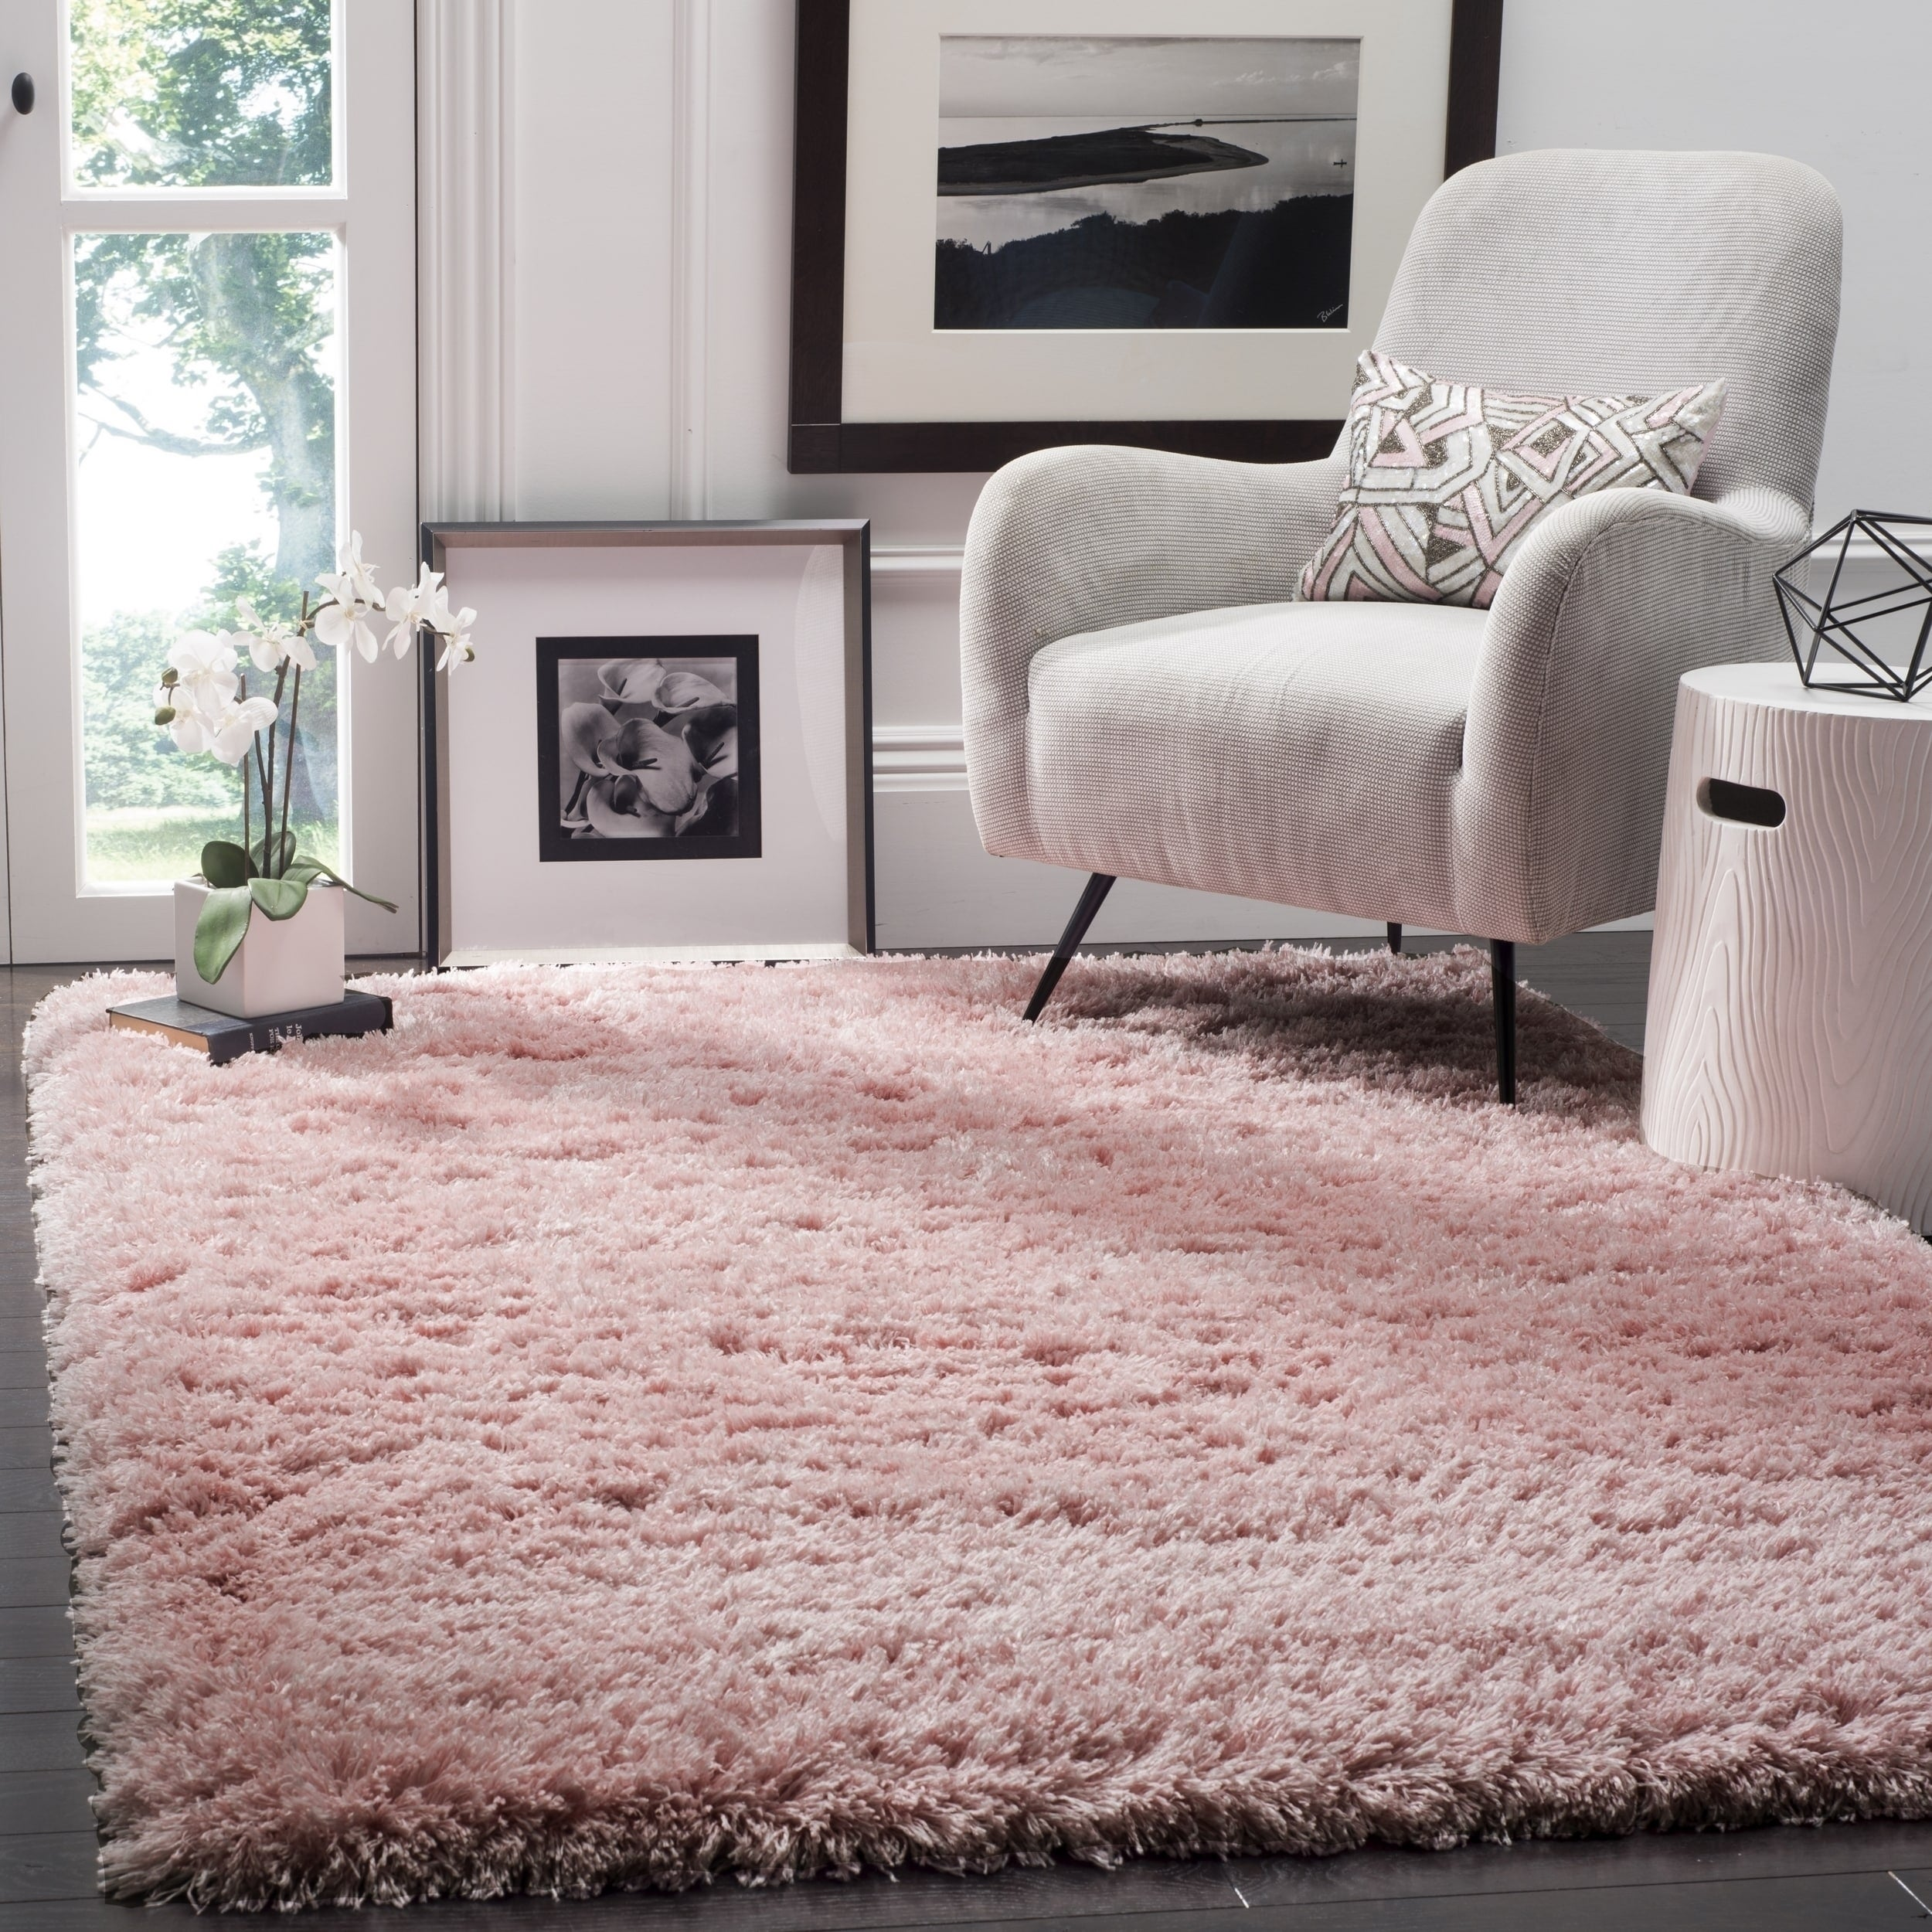 Safavieh Polar Light Pink Shag Rug 8 X 10 On Free Shipping Today Com 13299342